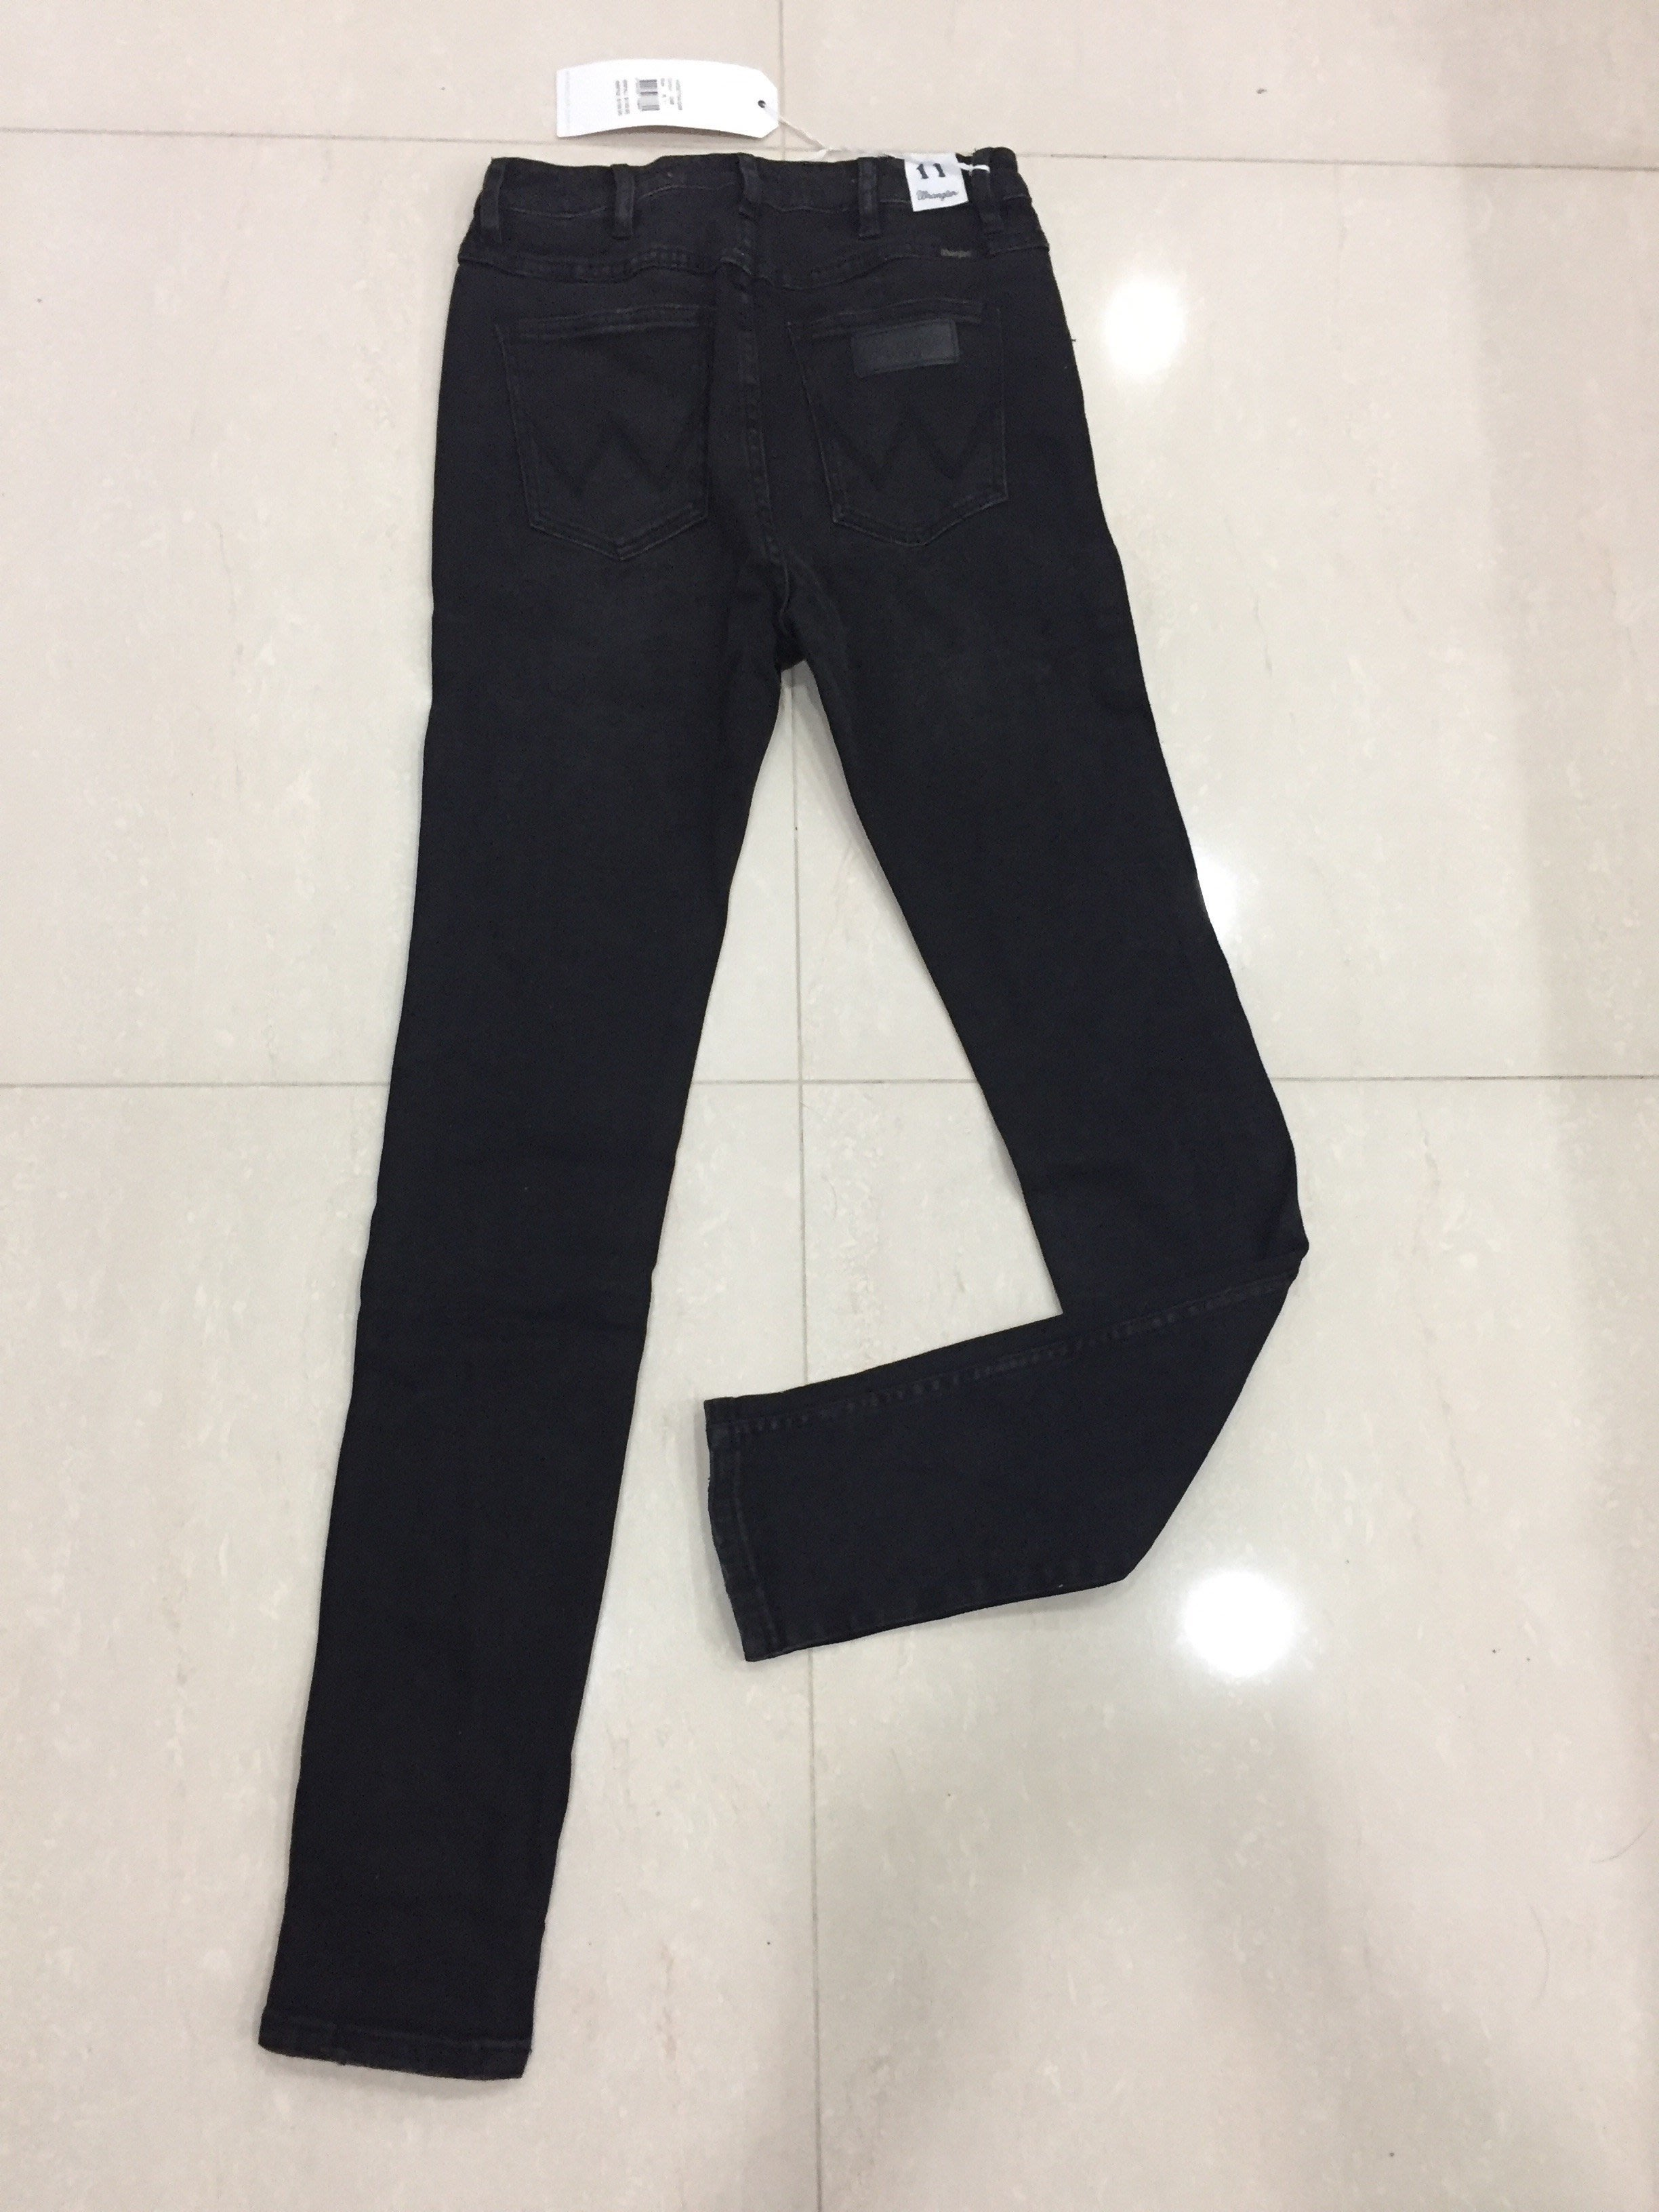 wrangler 藍哥 黑色高腰窄管褲11號 7hi twiggy high waist skinny fit (全新)1.5waist 28吋